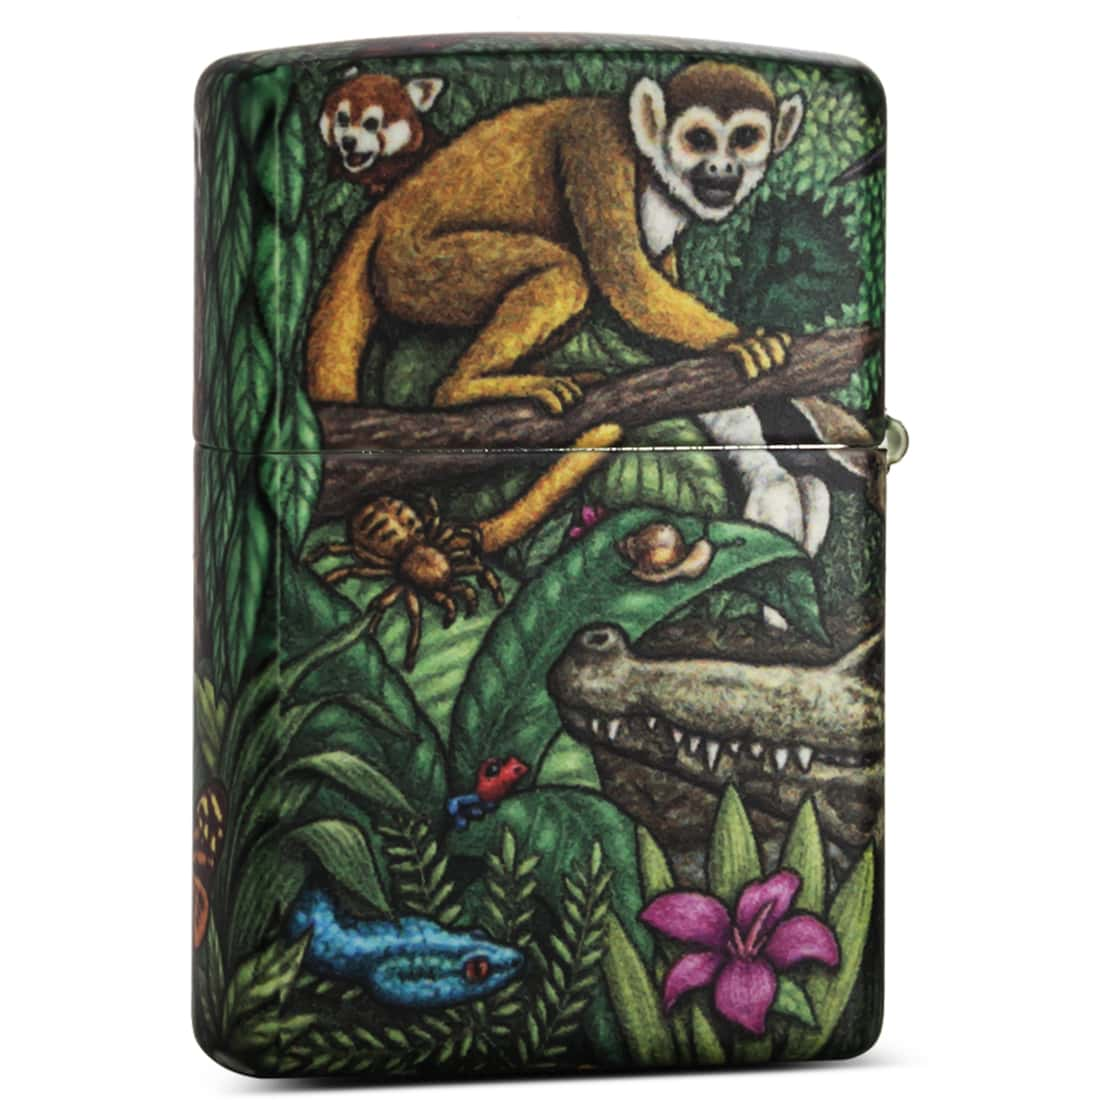 Photo #4 de Zippo Collector Mysteries of the Forest 2 Zippo